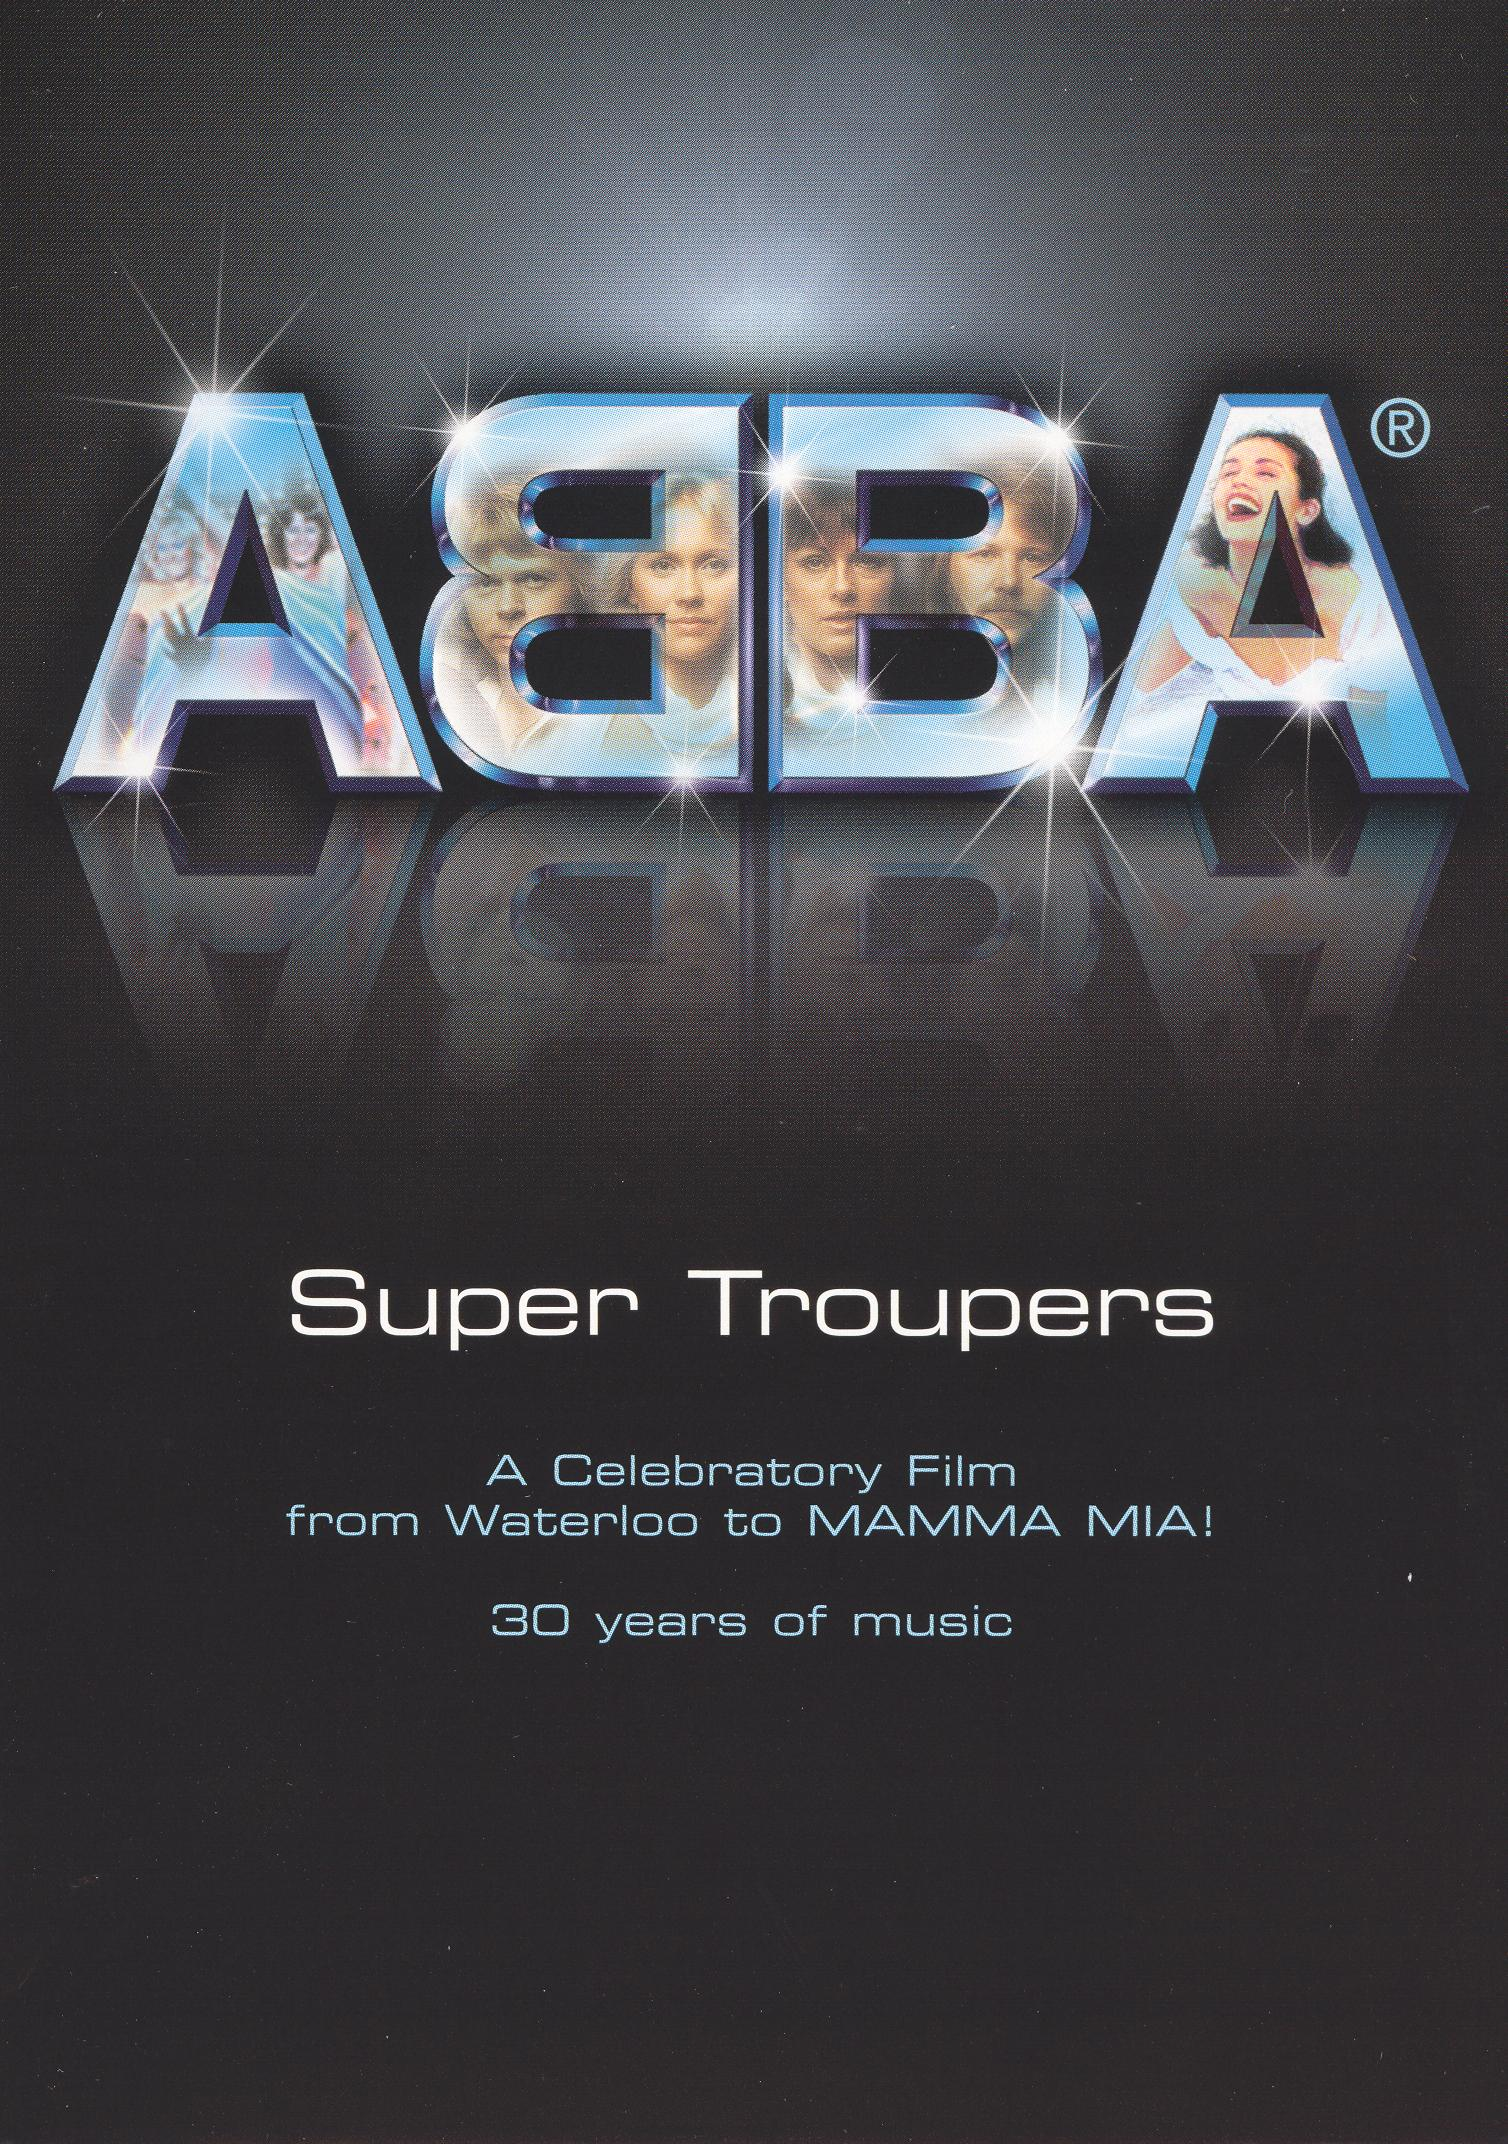 ABBA: Super Troopers